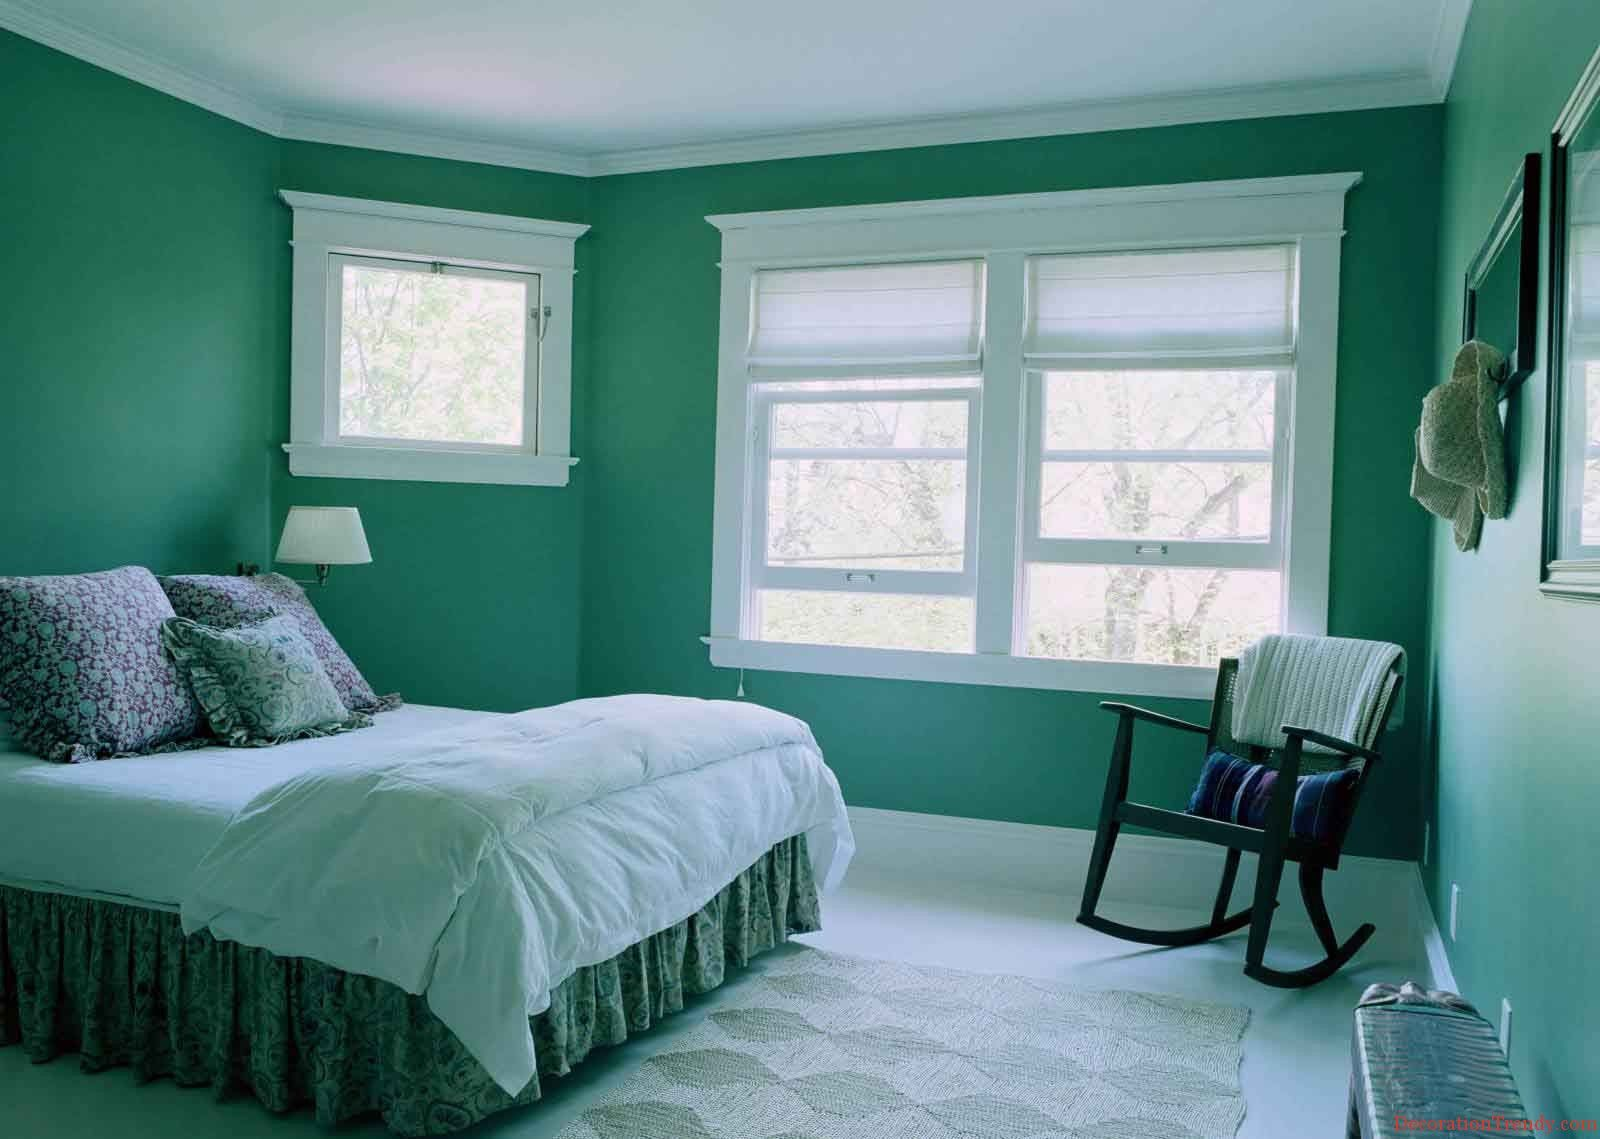 Light green bedroom colors - Wall Color Combination Design Ideas And Photos Get Creative Wall Painting Ideas Designs For Green Brown Bedroomslight